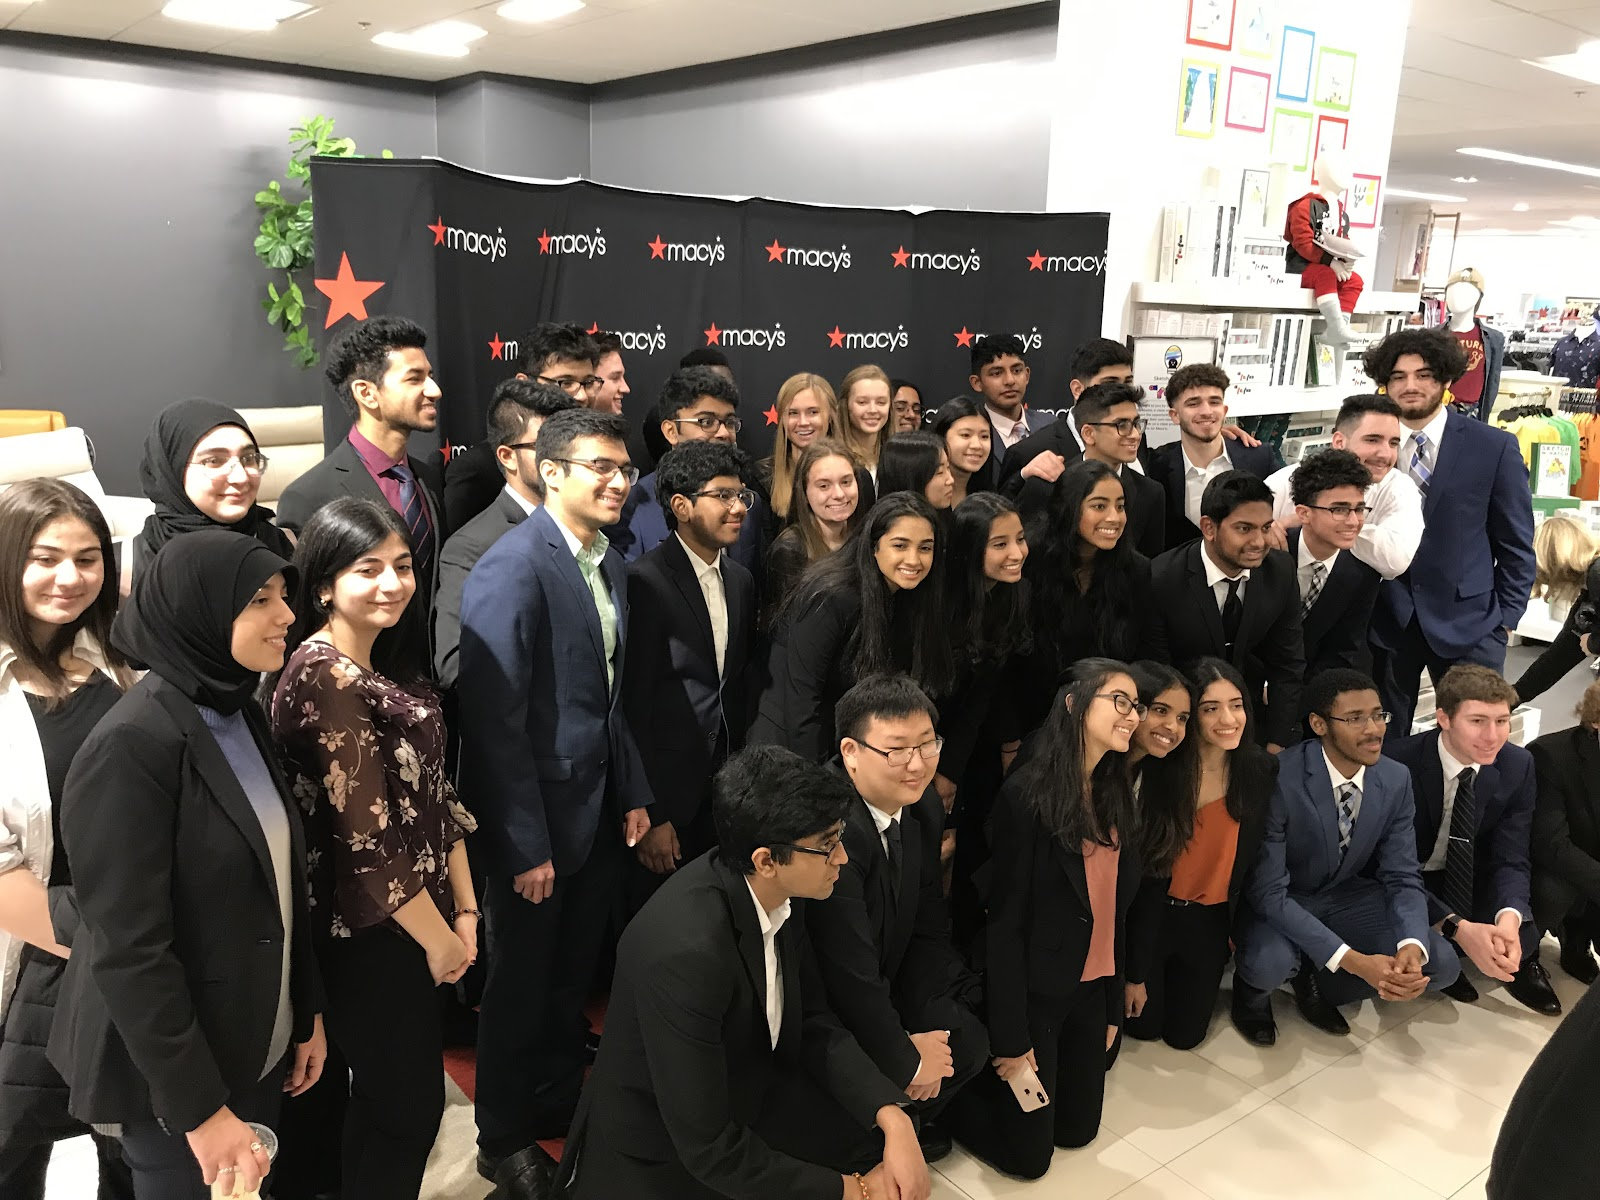 Fordson and Novi High School students taking an opportunity to pose for a photo together.